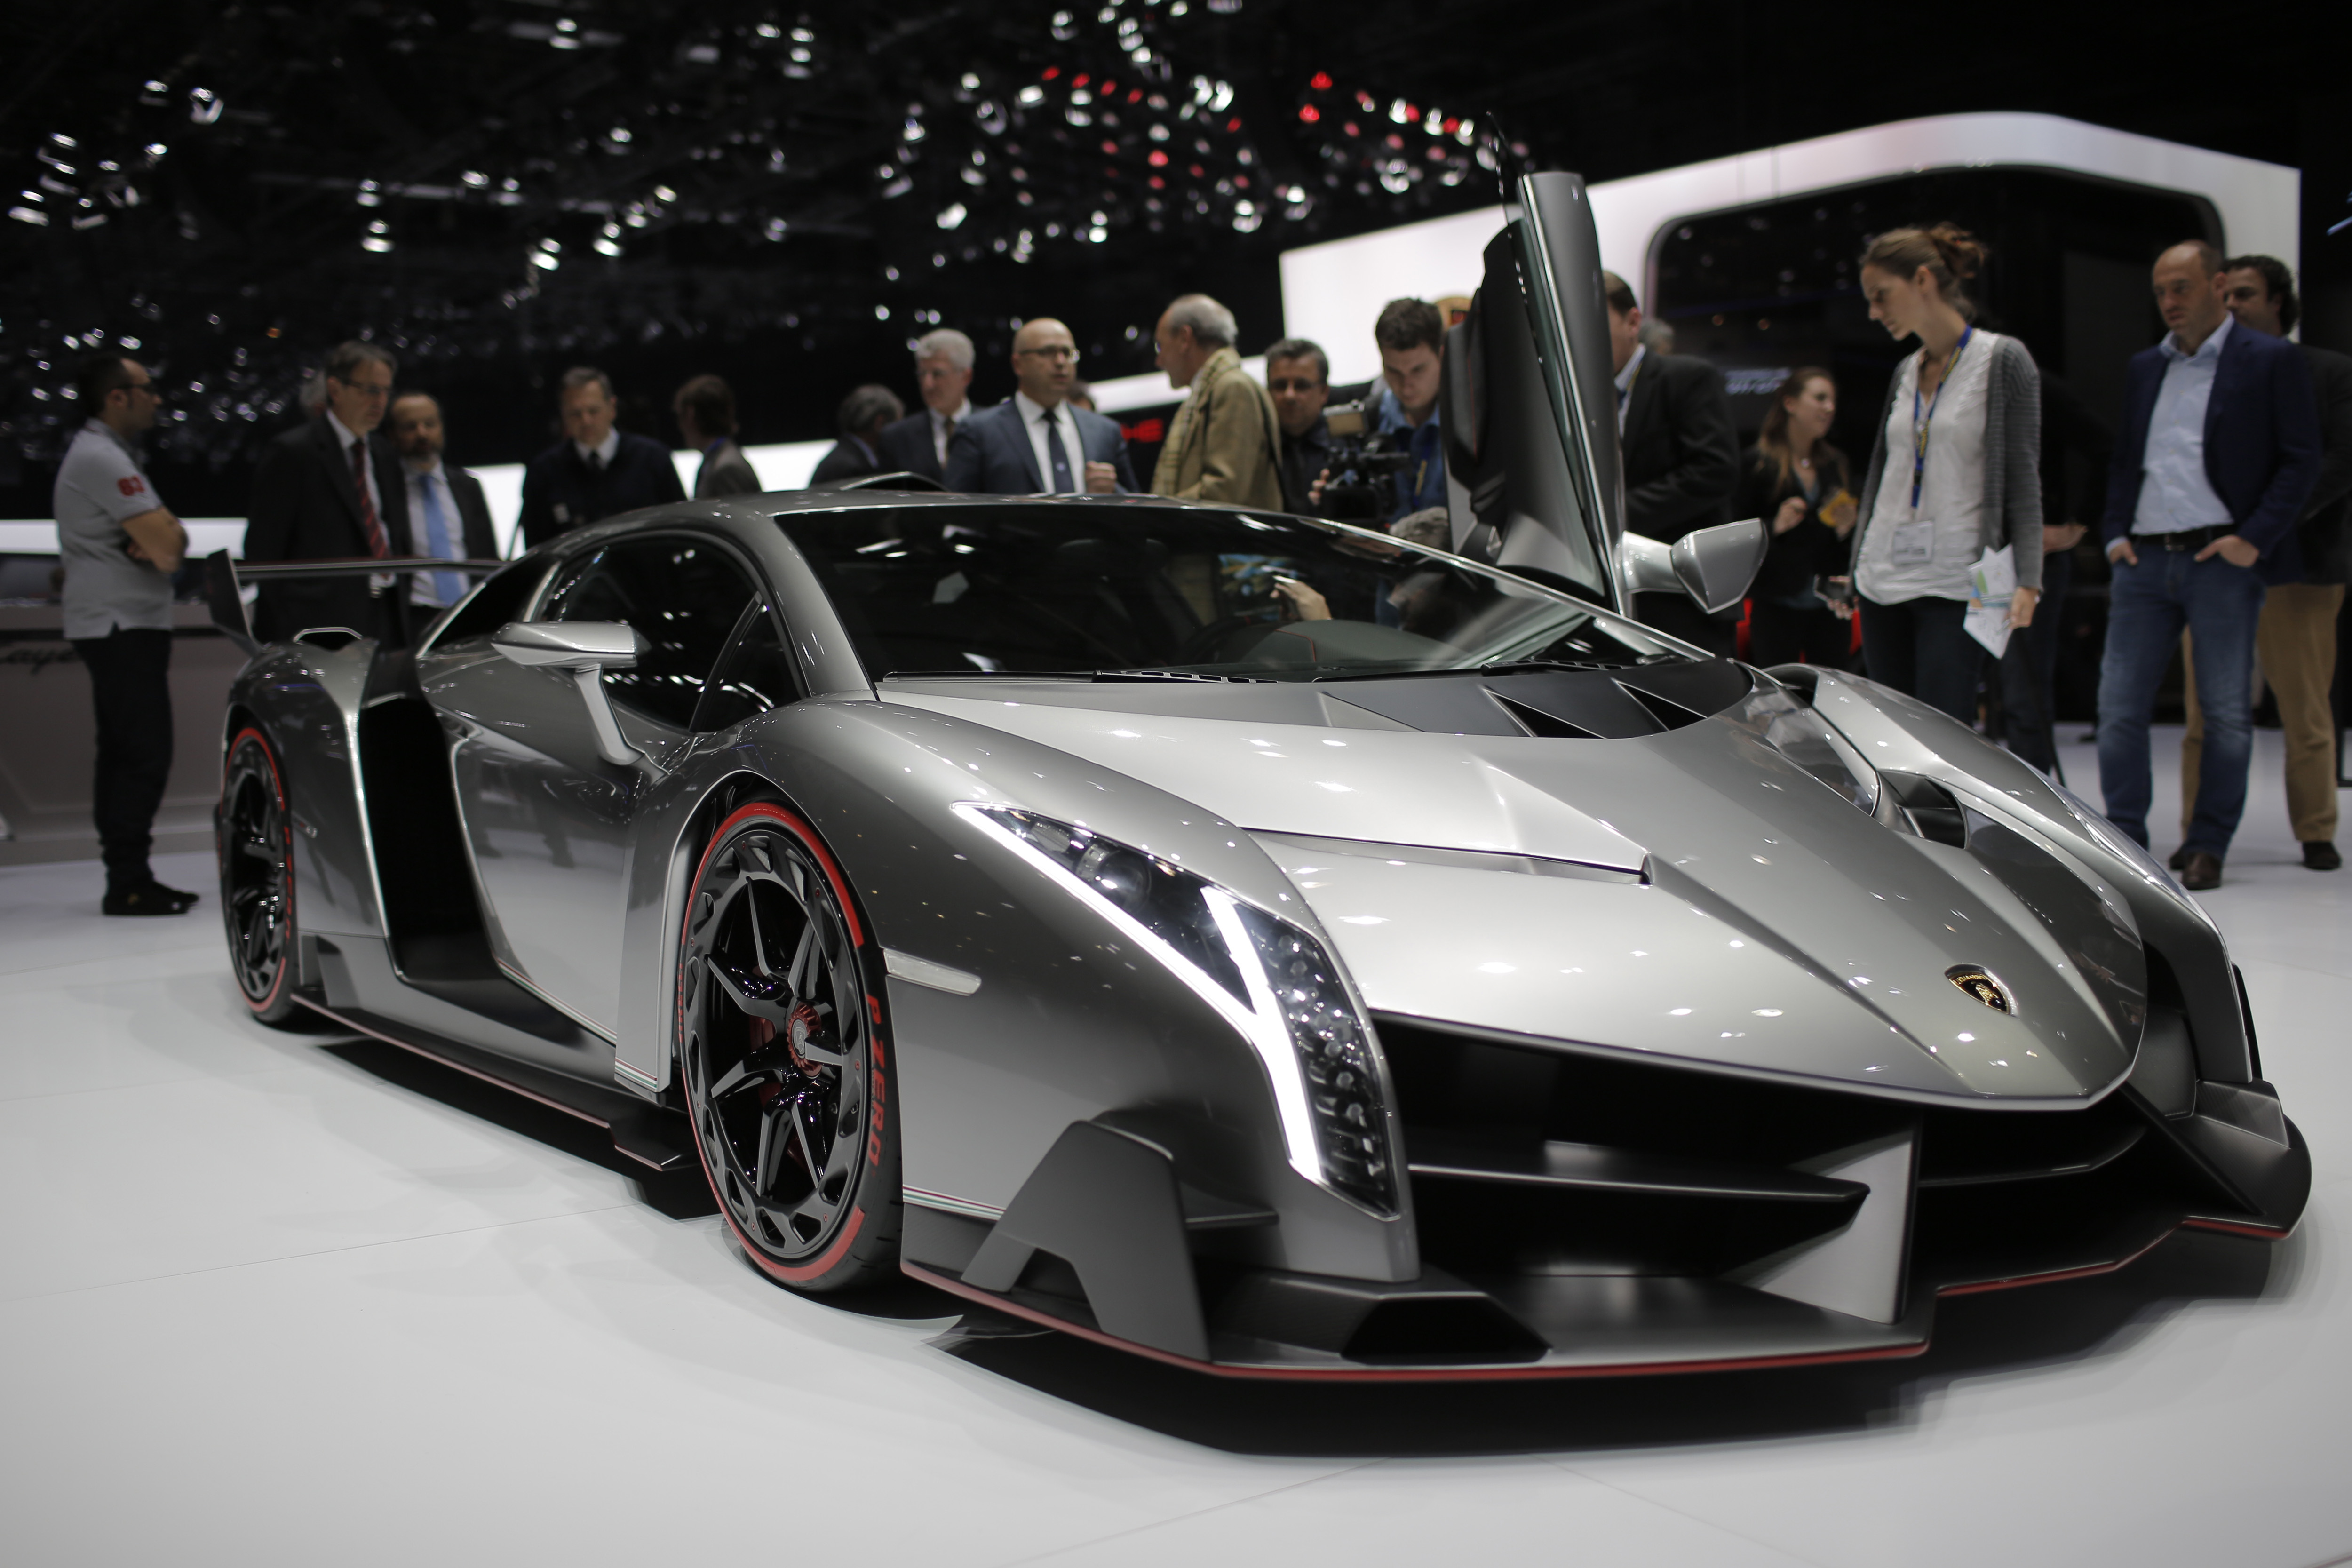 The new Lamborghini Veneno is seen during the first media day of the 83rd Geneva International Motor Show, Switzerland, Tuesday, March 5, 2013. The Motor Show will open its gates to the public from March 7 to 17.  (AP Photo/Laurent Cipriani)